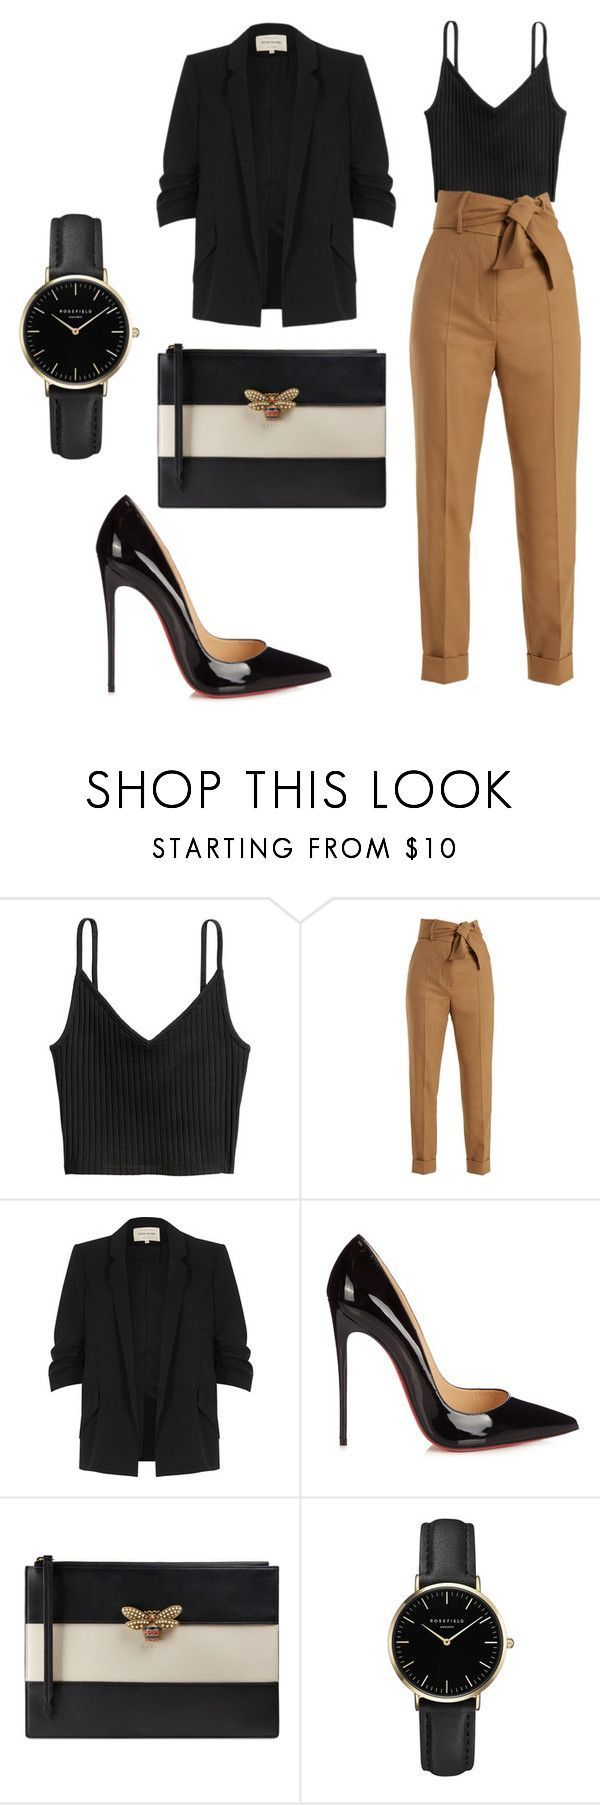 """""""hell to the no"""" by mar-01 on Polyvore featuring moda, Sara Battaglia, River Island, Christian Louboutin, Gucci y ROSEFIELD"""